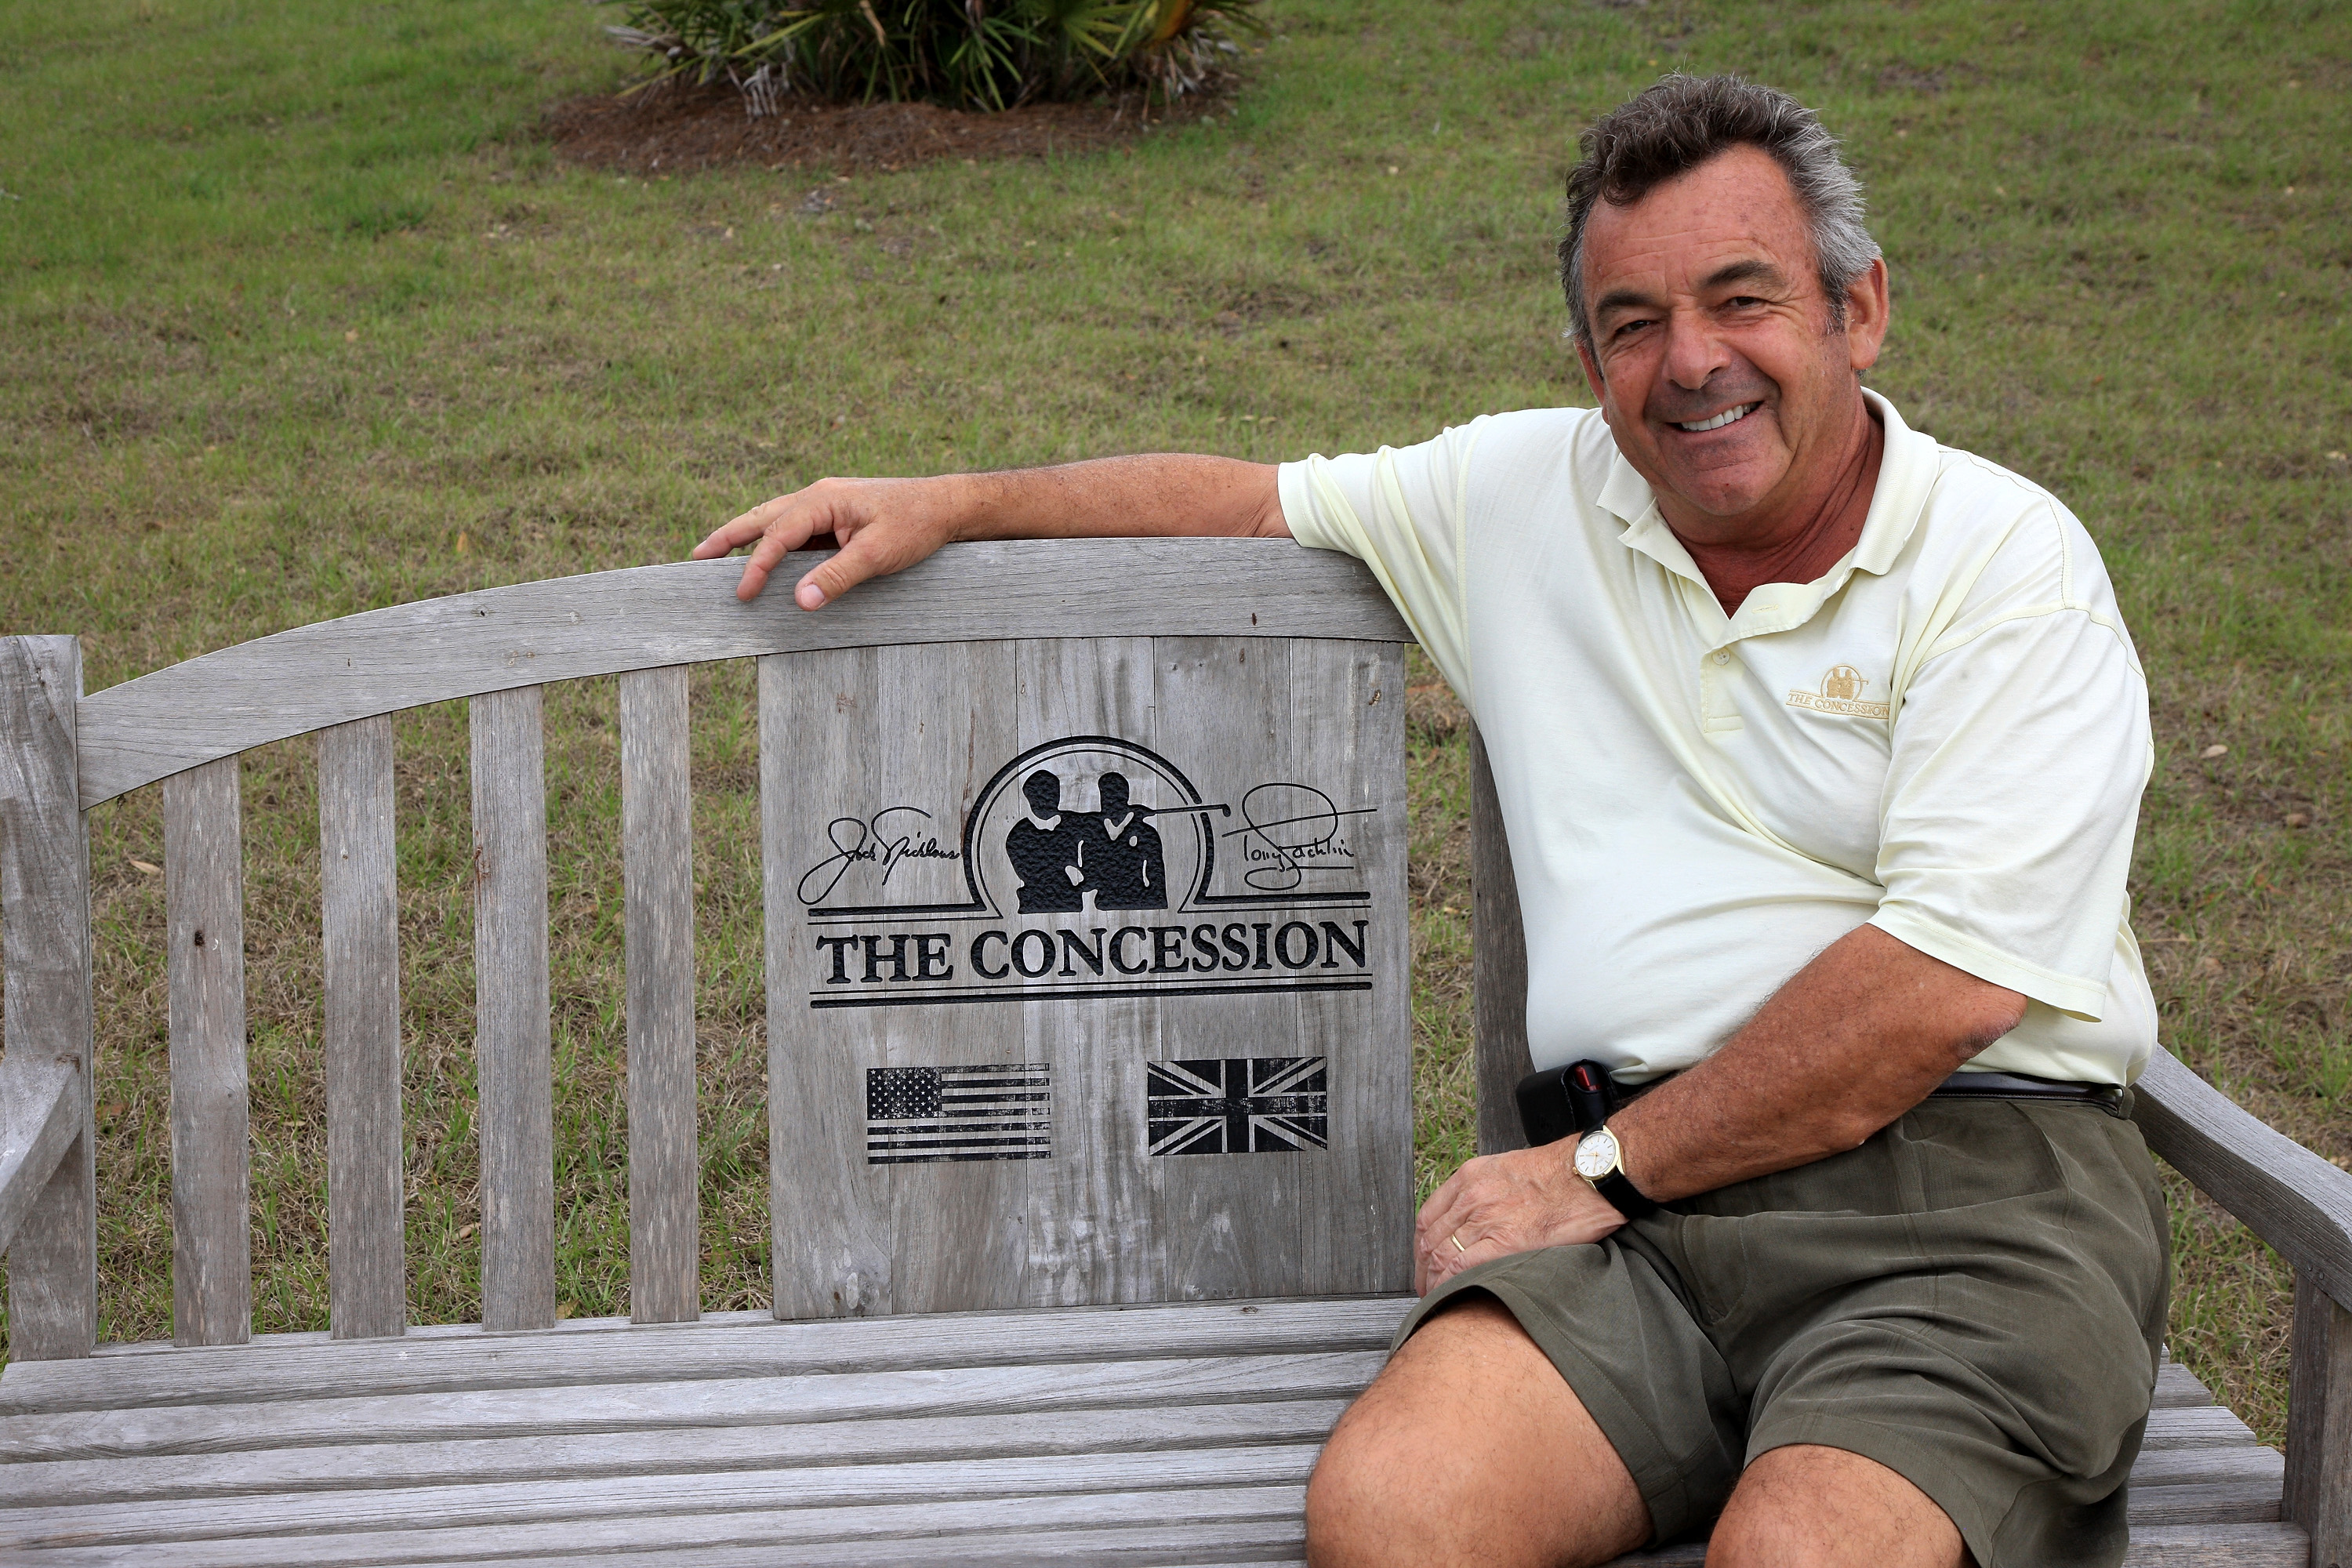 Tony Jacklin, 2009. (Photo by David Cannon/Getty Images)